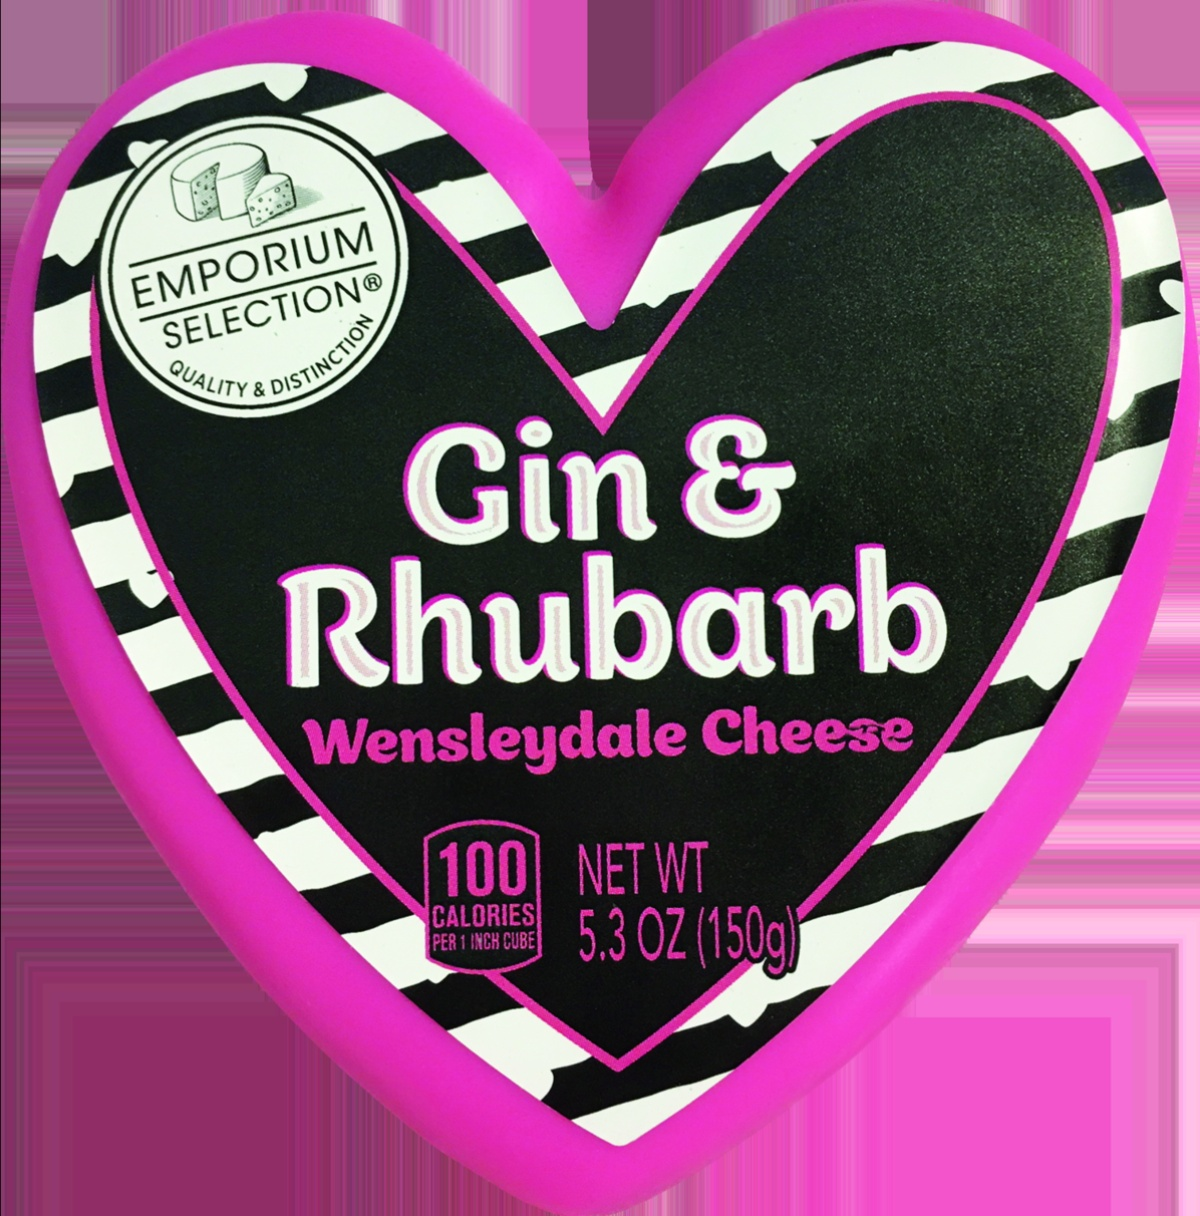 heart-shaped cheese with gin and rhubarb